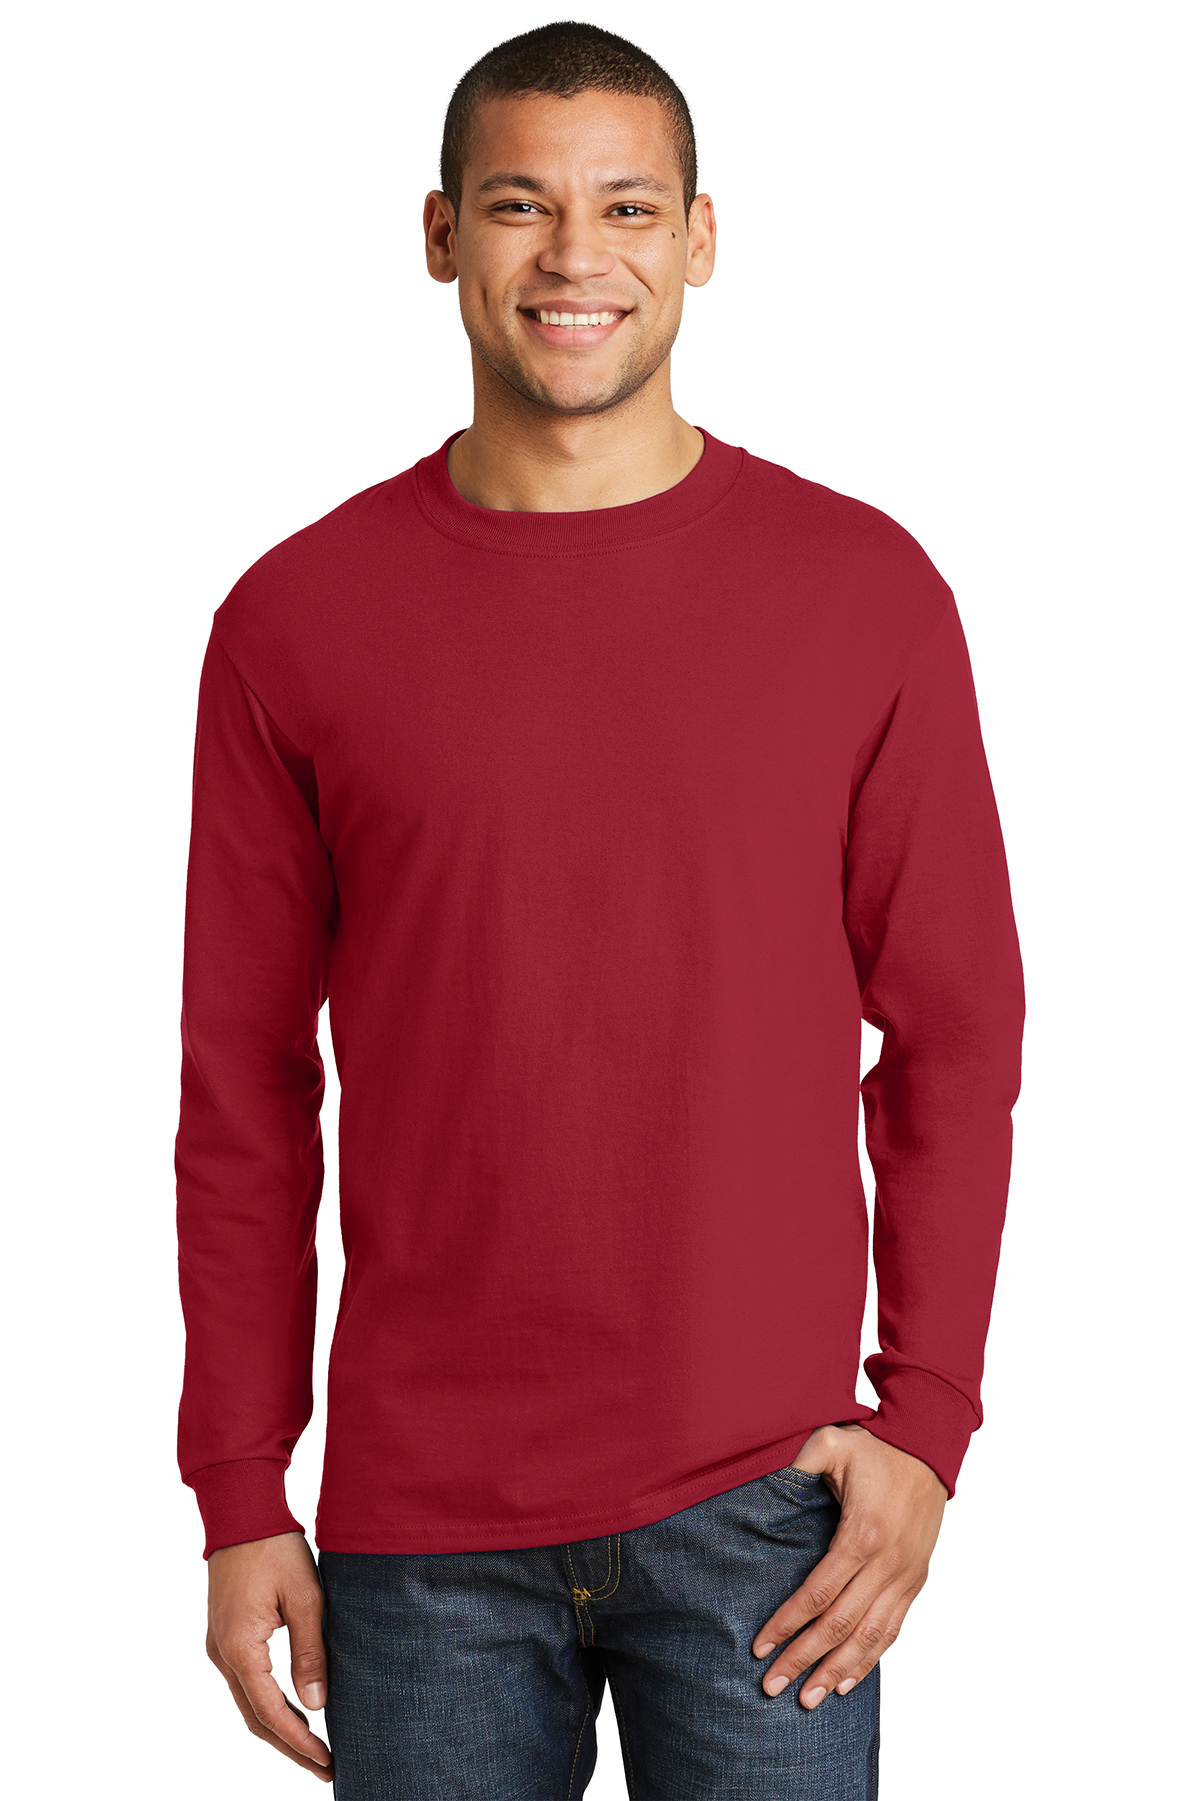 c9a95f1892d228 Hanes® Beefy-T® - 100% Cotton Long Sleeve T-Shirt | 6-6.1 100 ...